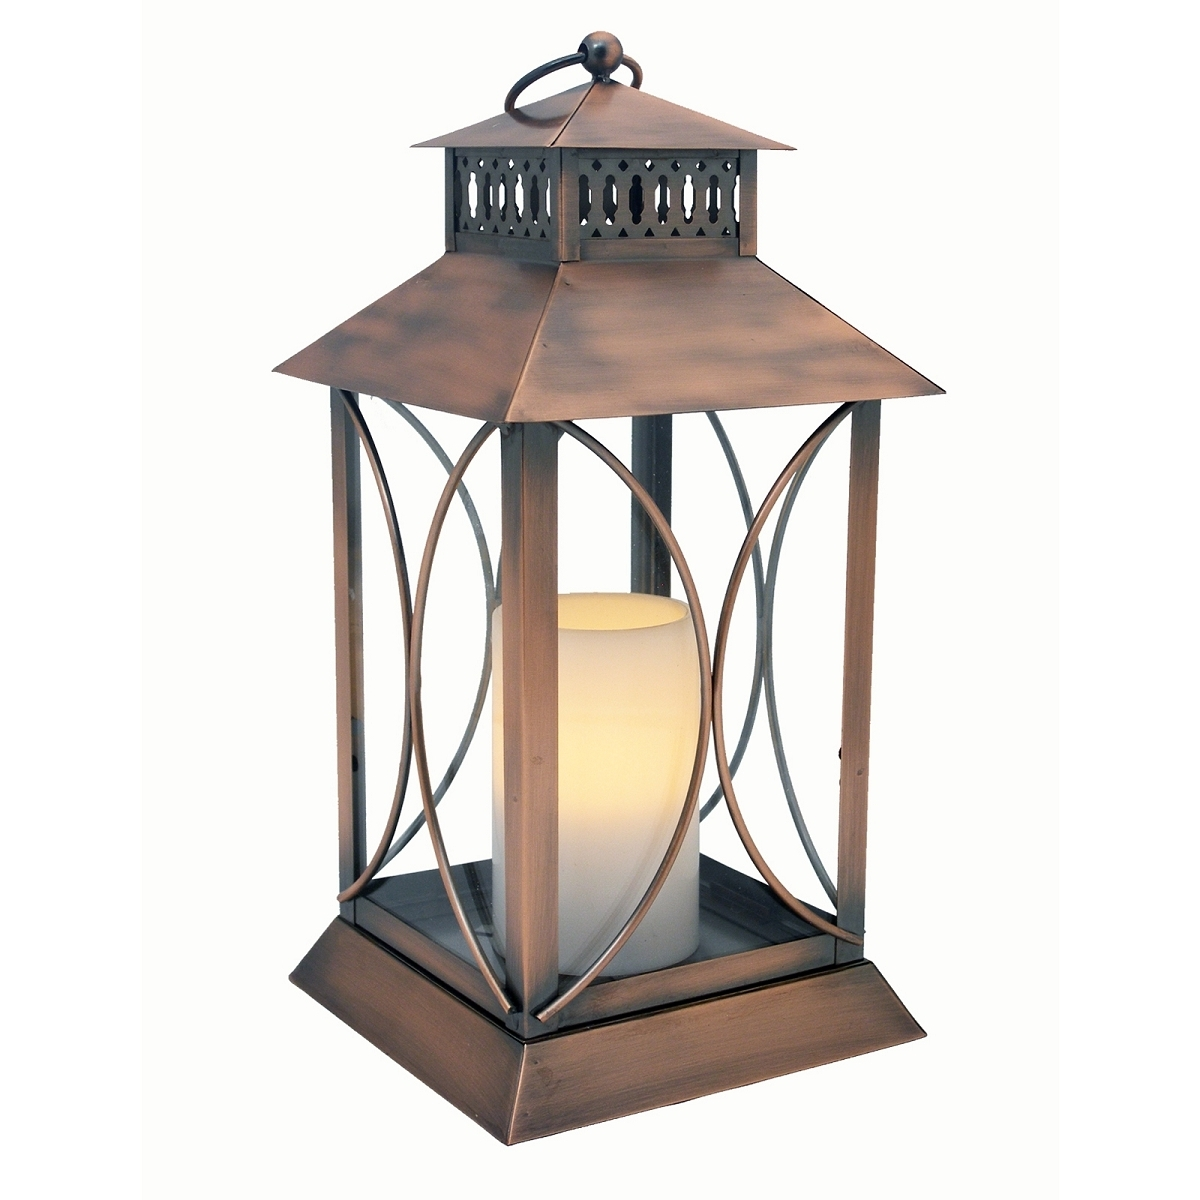 Indoor Outdoor Lanterns For 2018 Neuporte Flameless Candle Lantern With Timer Indoor Outdoor (View 8 of 20)